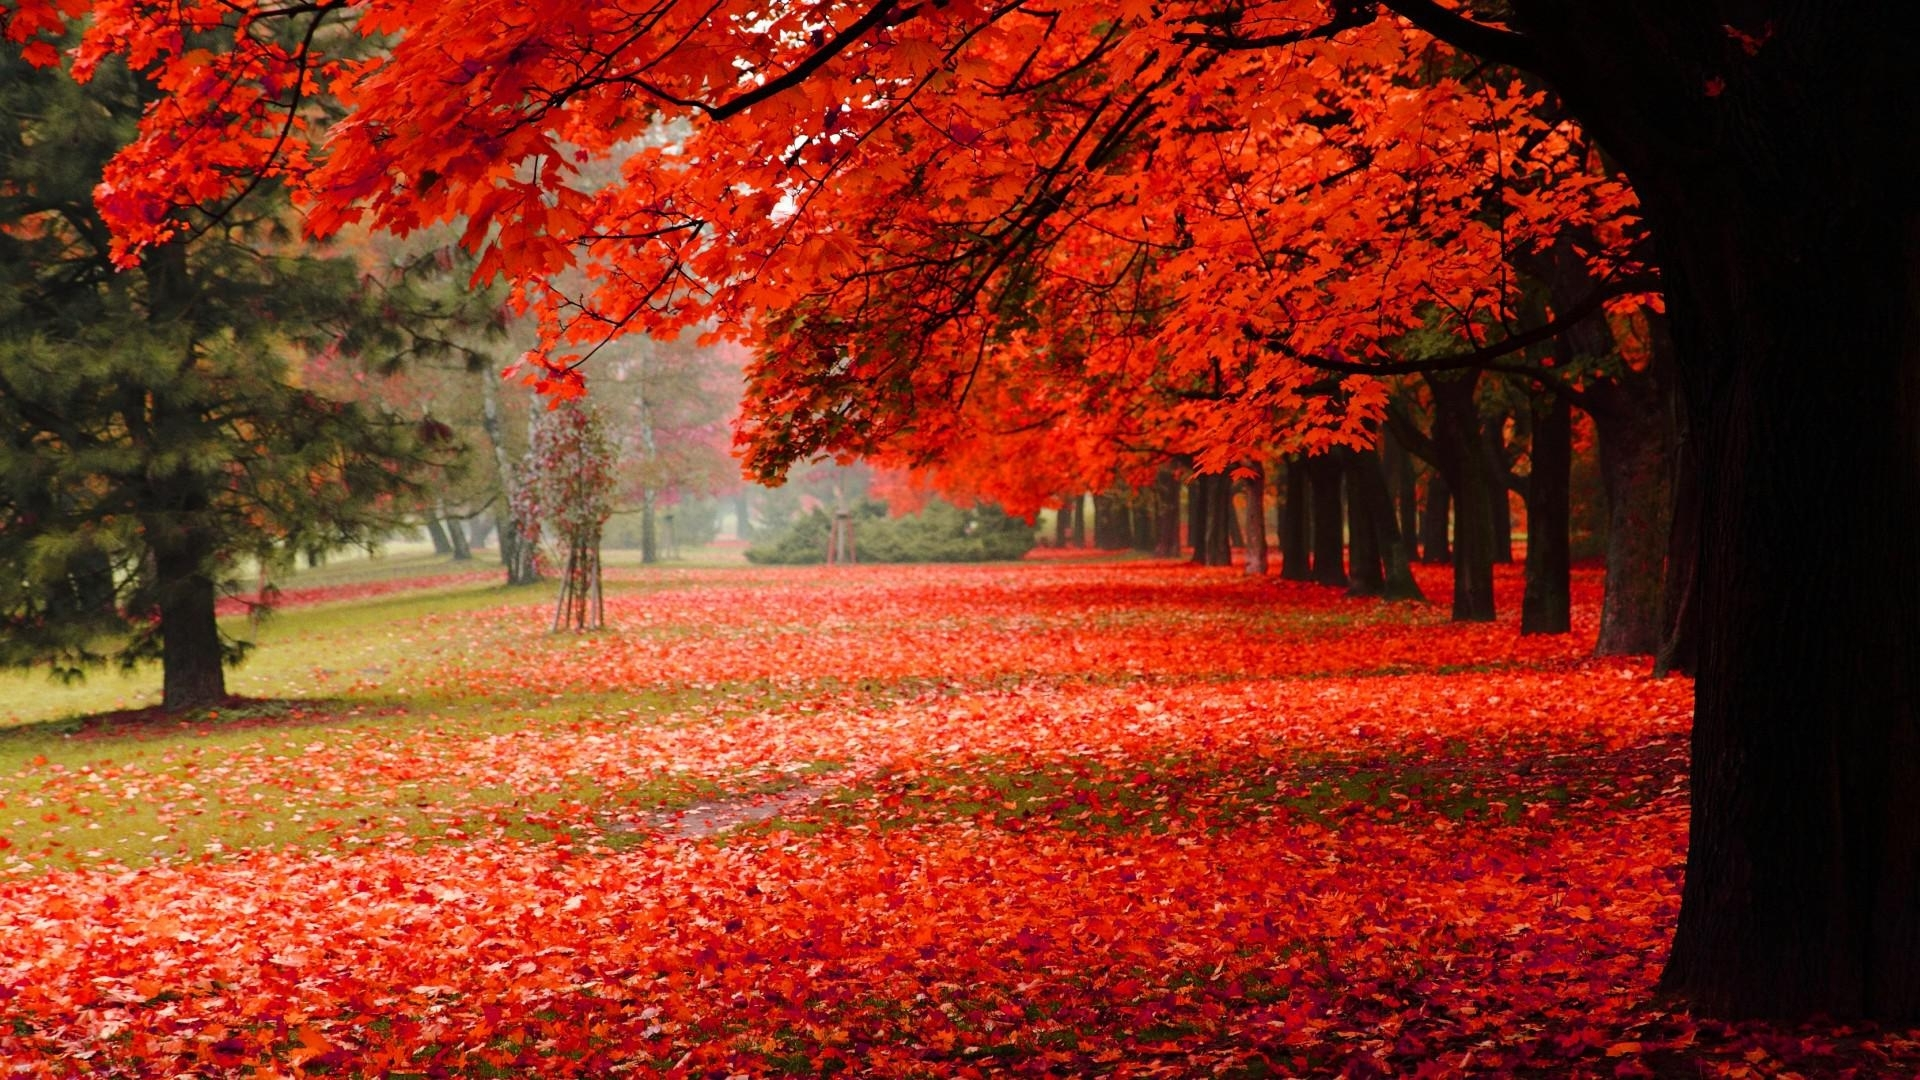 natural, park, autumn, red leaves, autumn scenery hd free desktop